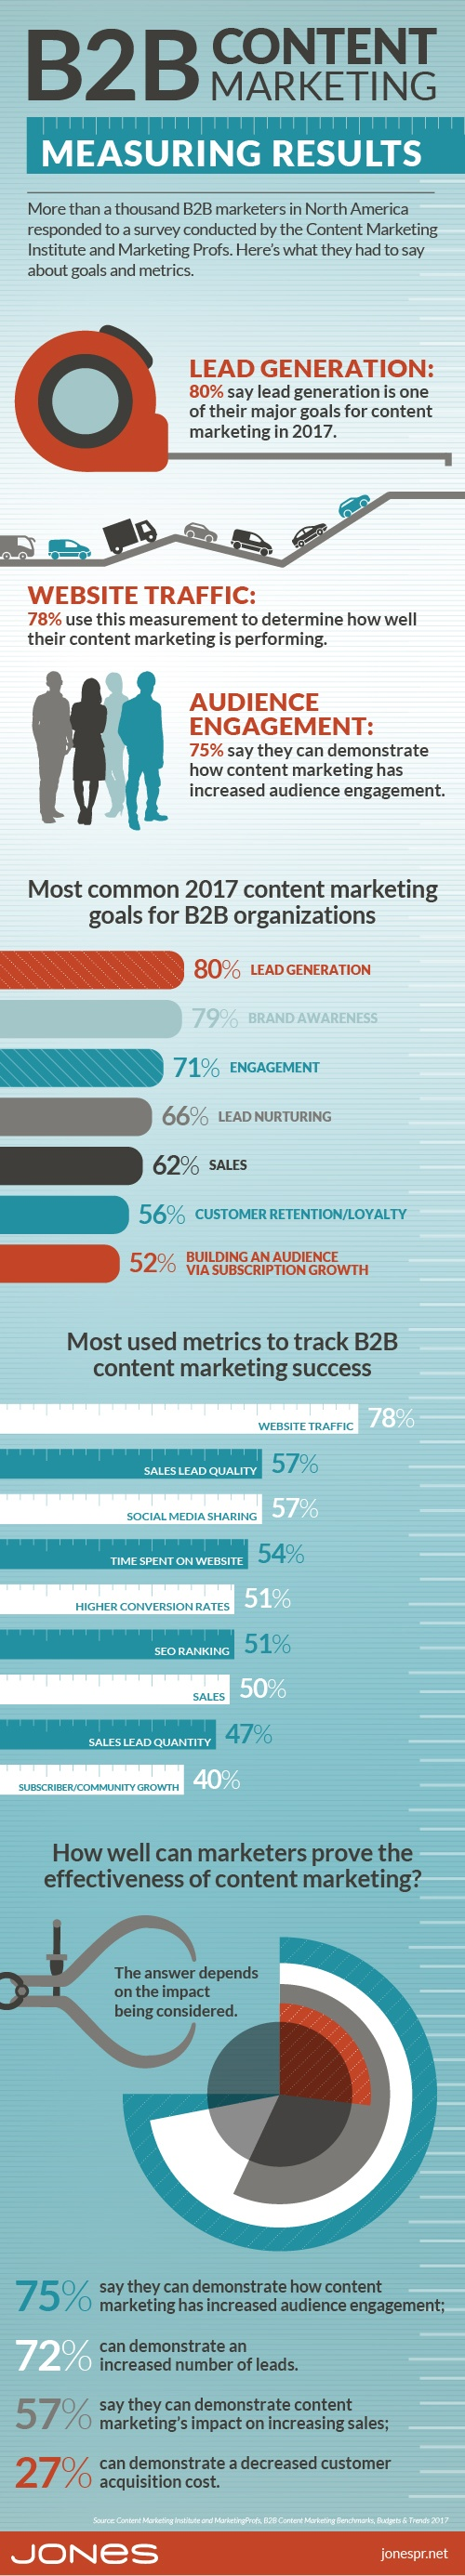 Are You Measuring Your Content Marketing Results? (Infographic)